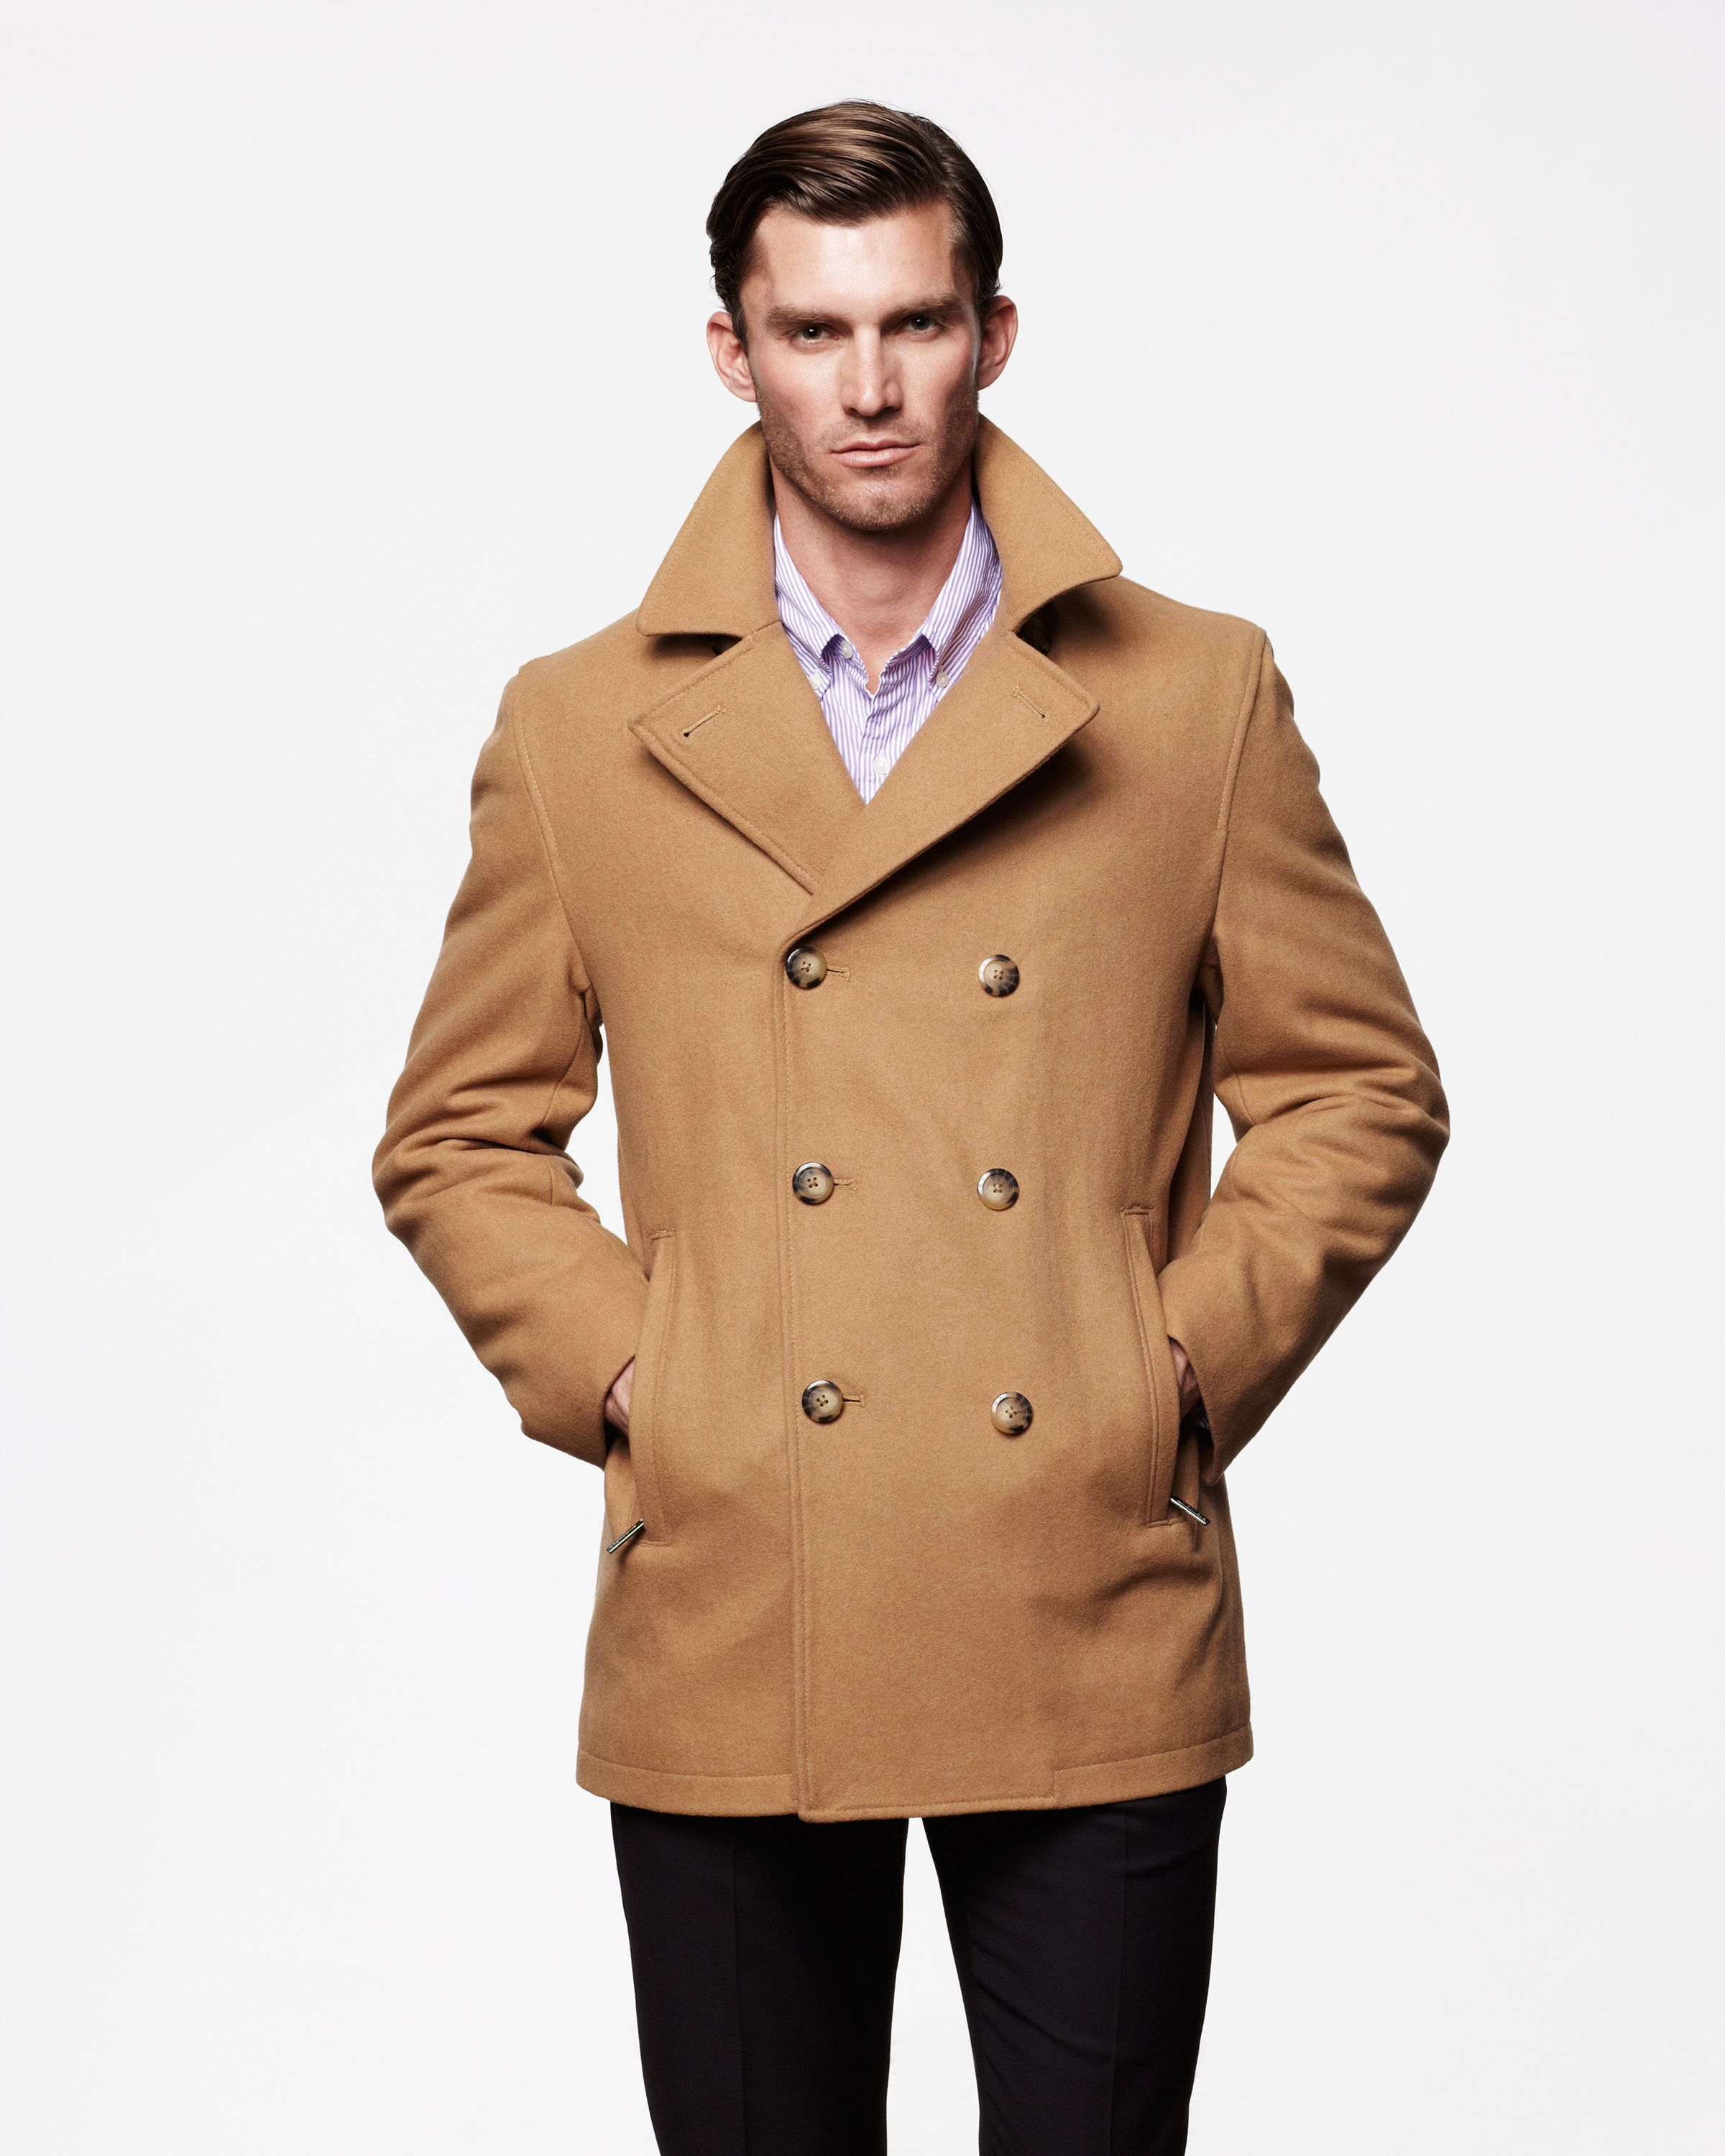 Images of Wool Pea Coat Mens - Reikian